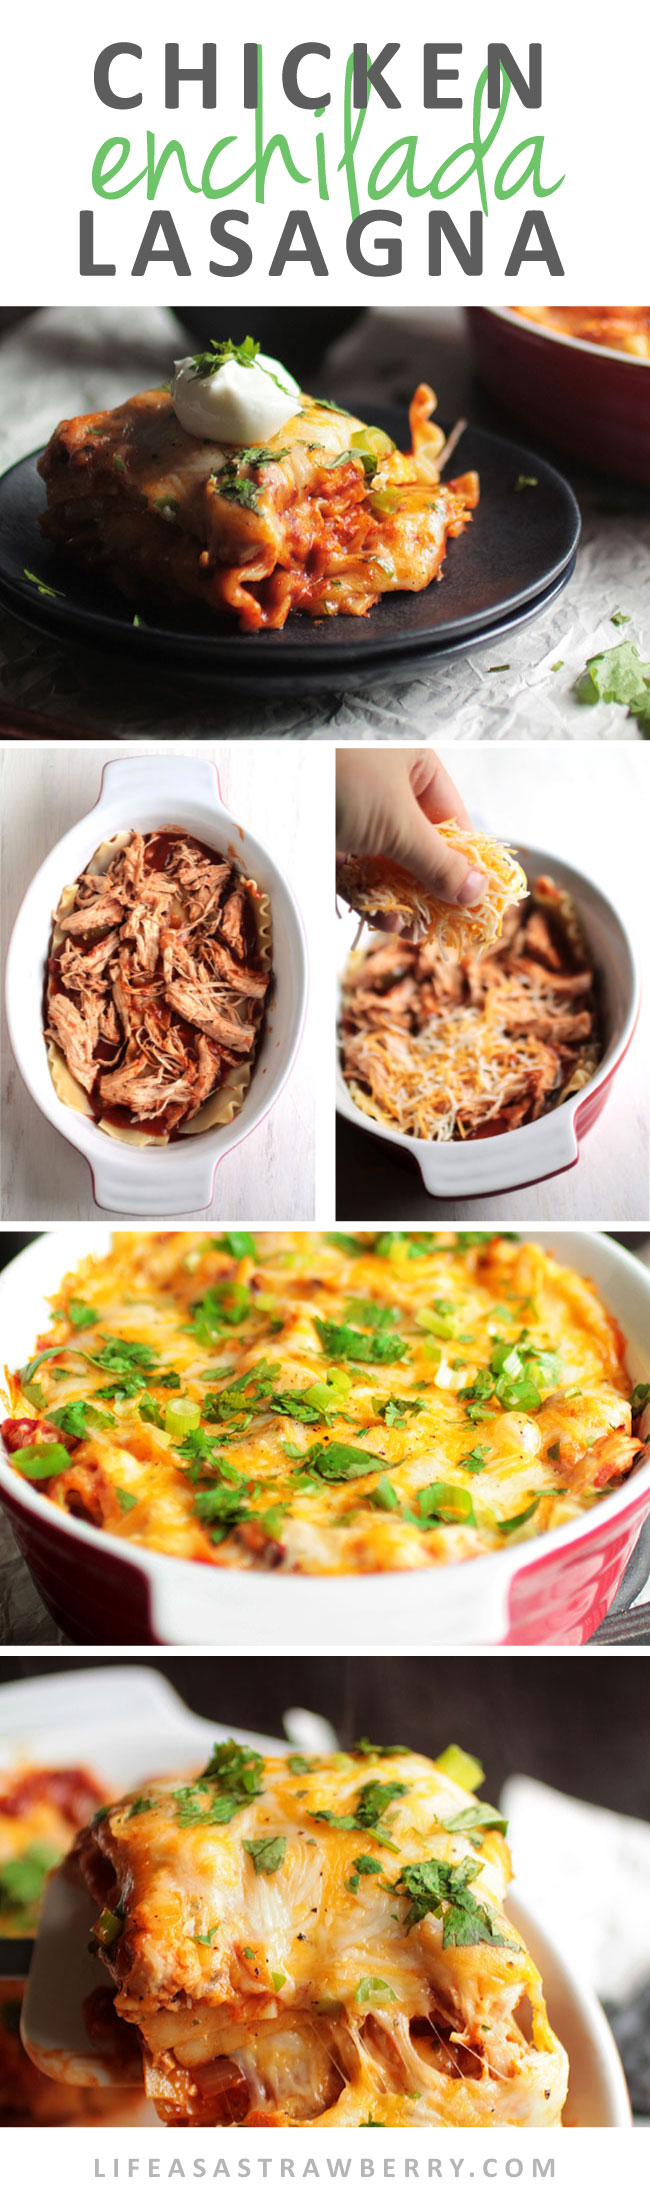 Chicken Enchilada Lasagna | This easy enchilada recipe is a fun twist on your favorite lasagna! An easy chicken recipe for busy weeknights - and it freezes wonderfully if you want to make it ahead of time for freezer meals! Uses an easy homemade enchilada sauce, slow cooker chicken, al dente lasagna noodles and plenty of cheese.